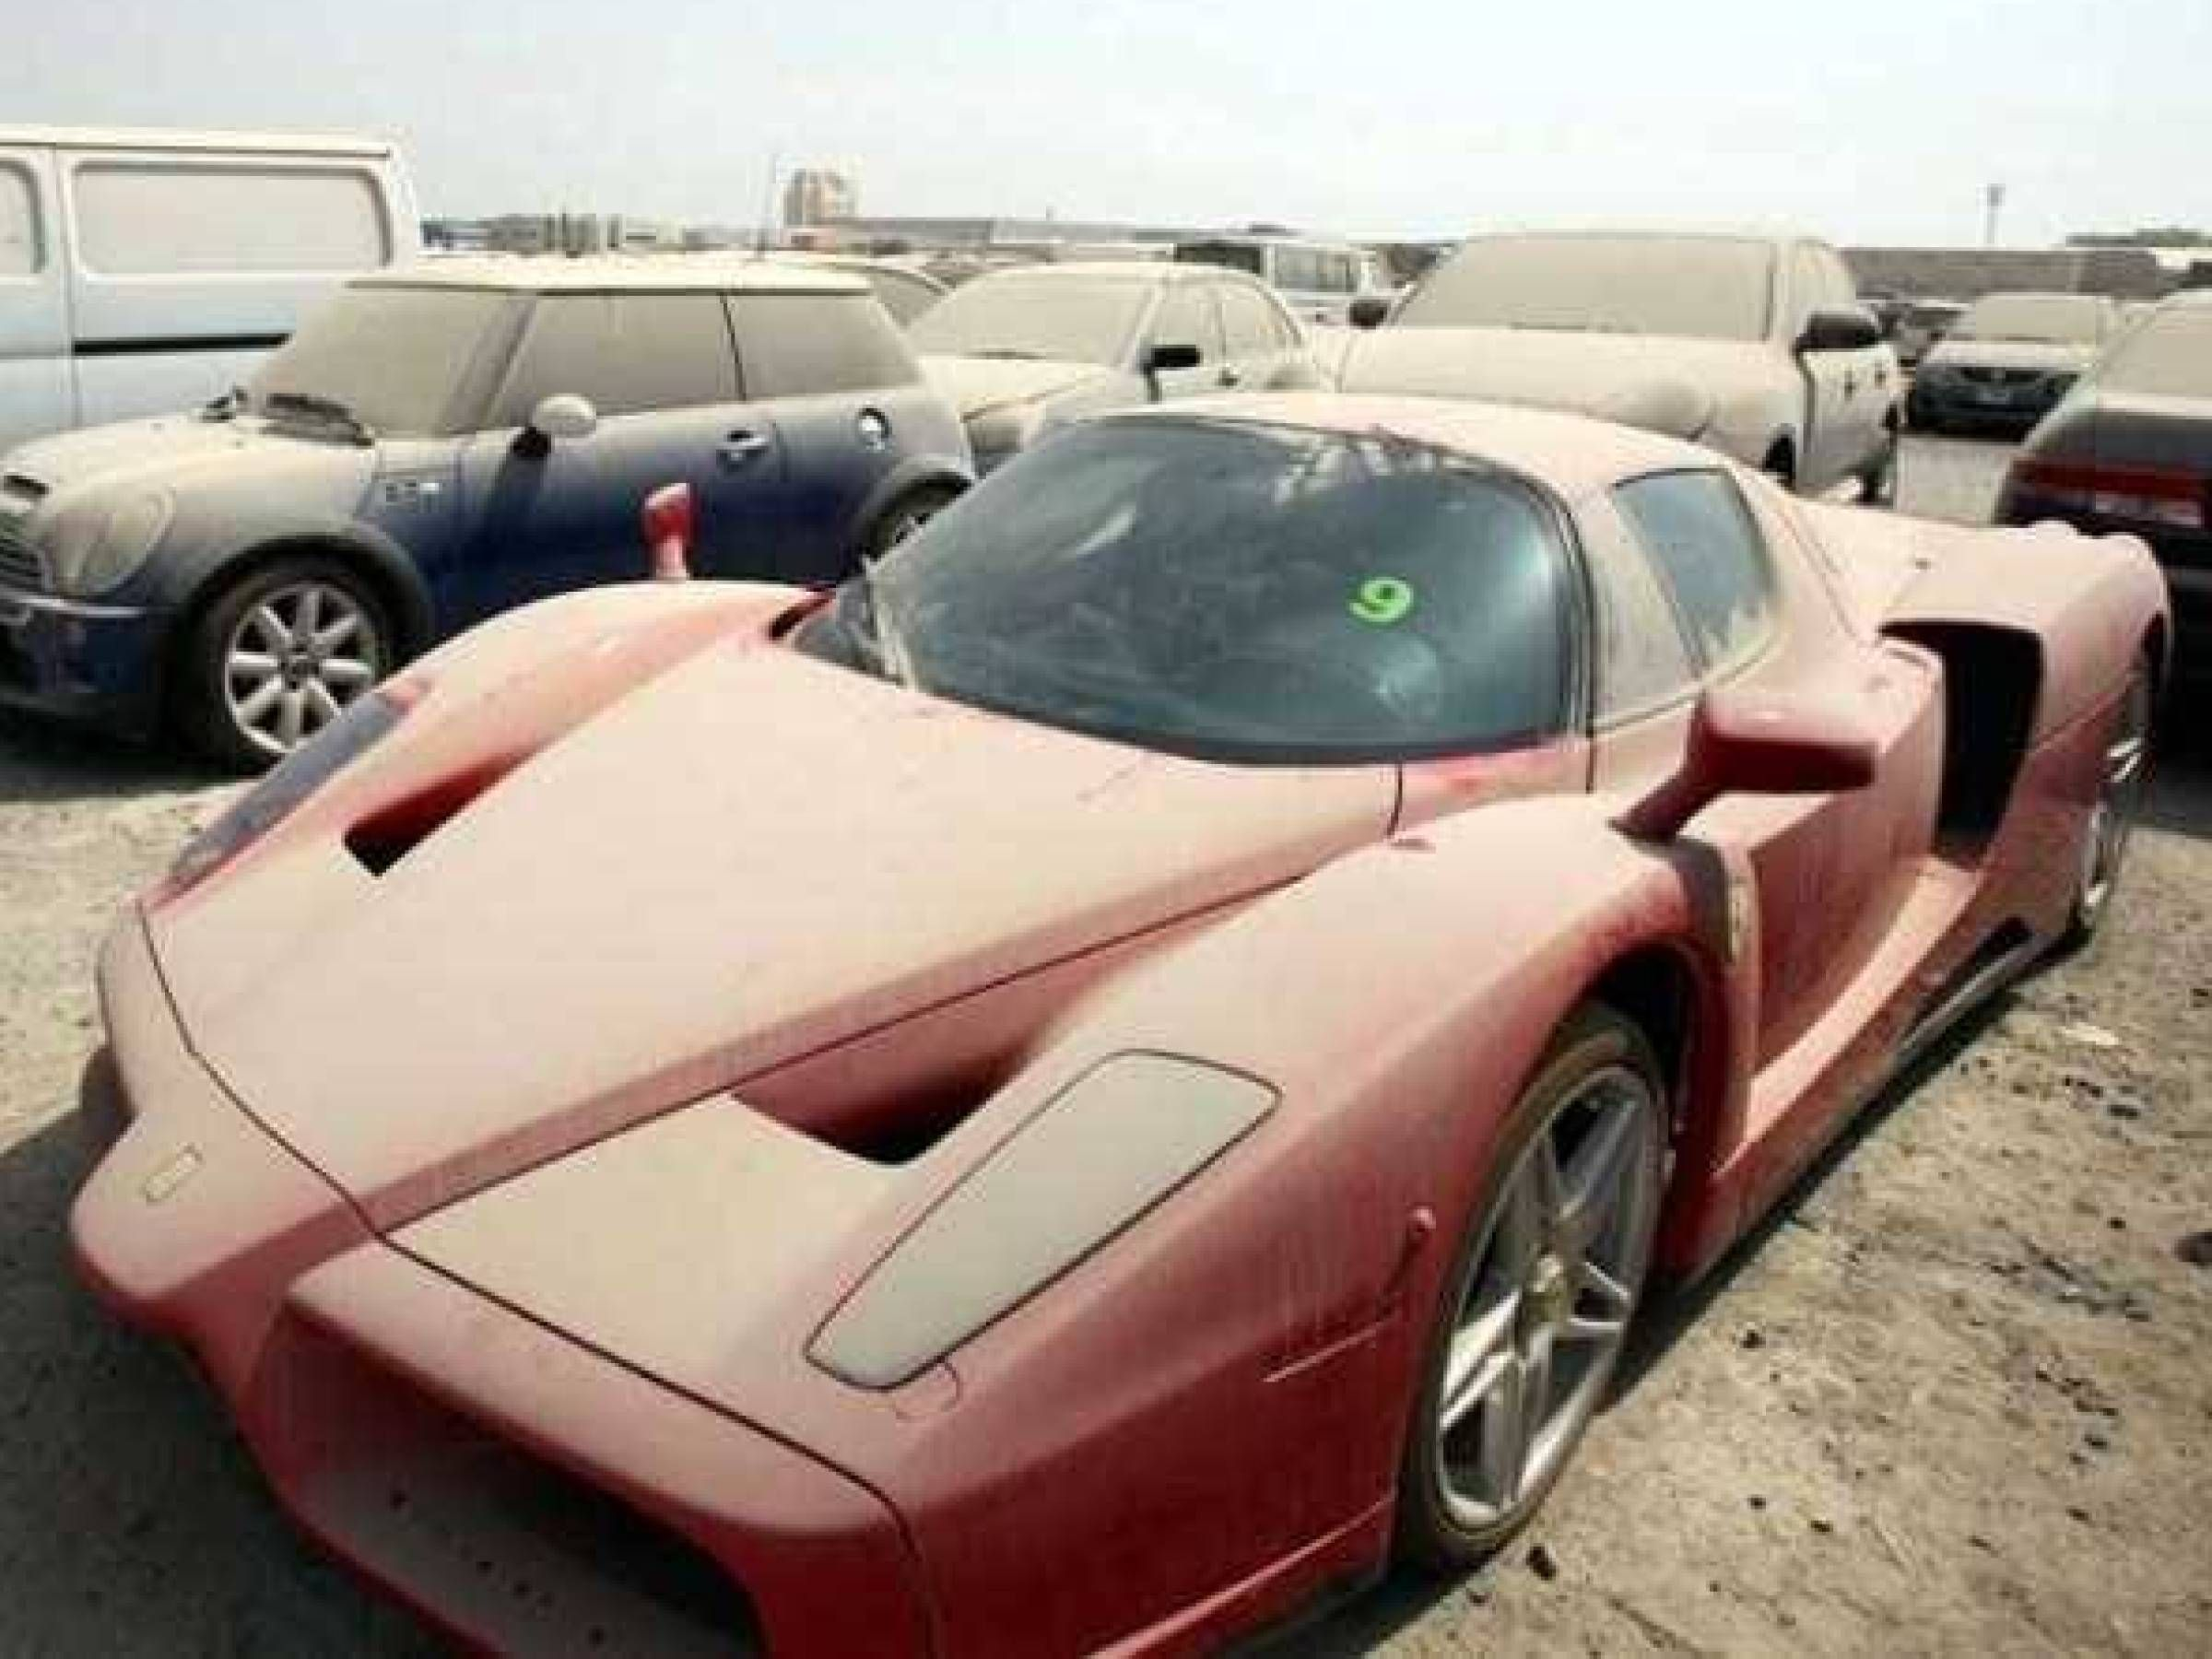 Abandoned Supercars In Dubai 2400 1800 Abandoned Cars In Dubai Abandoned Cars High End Cars